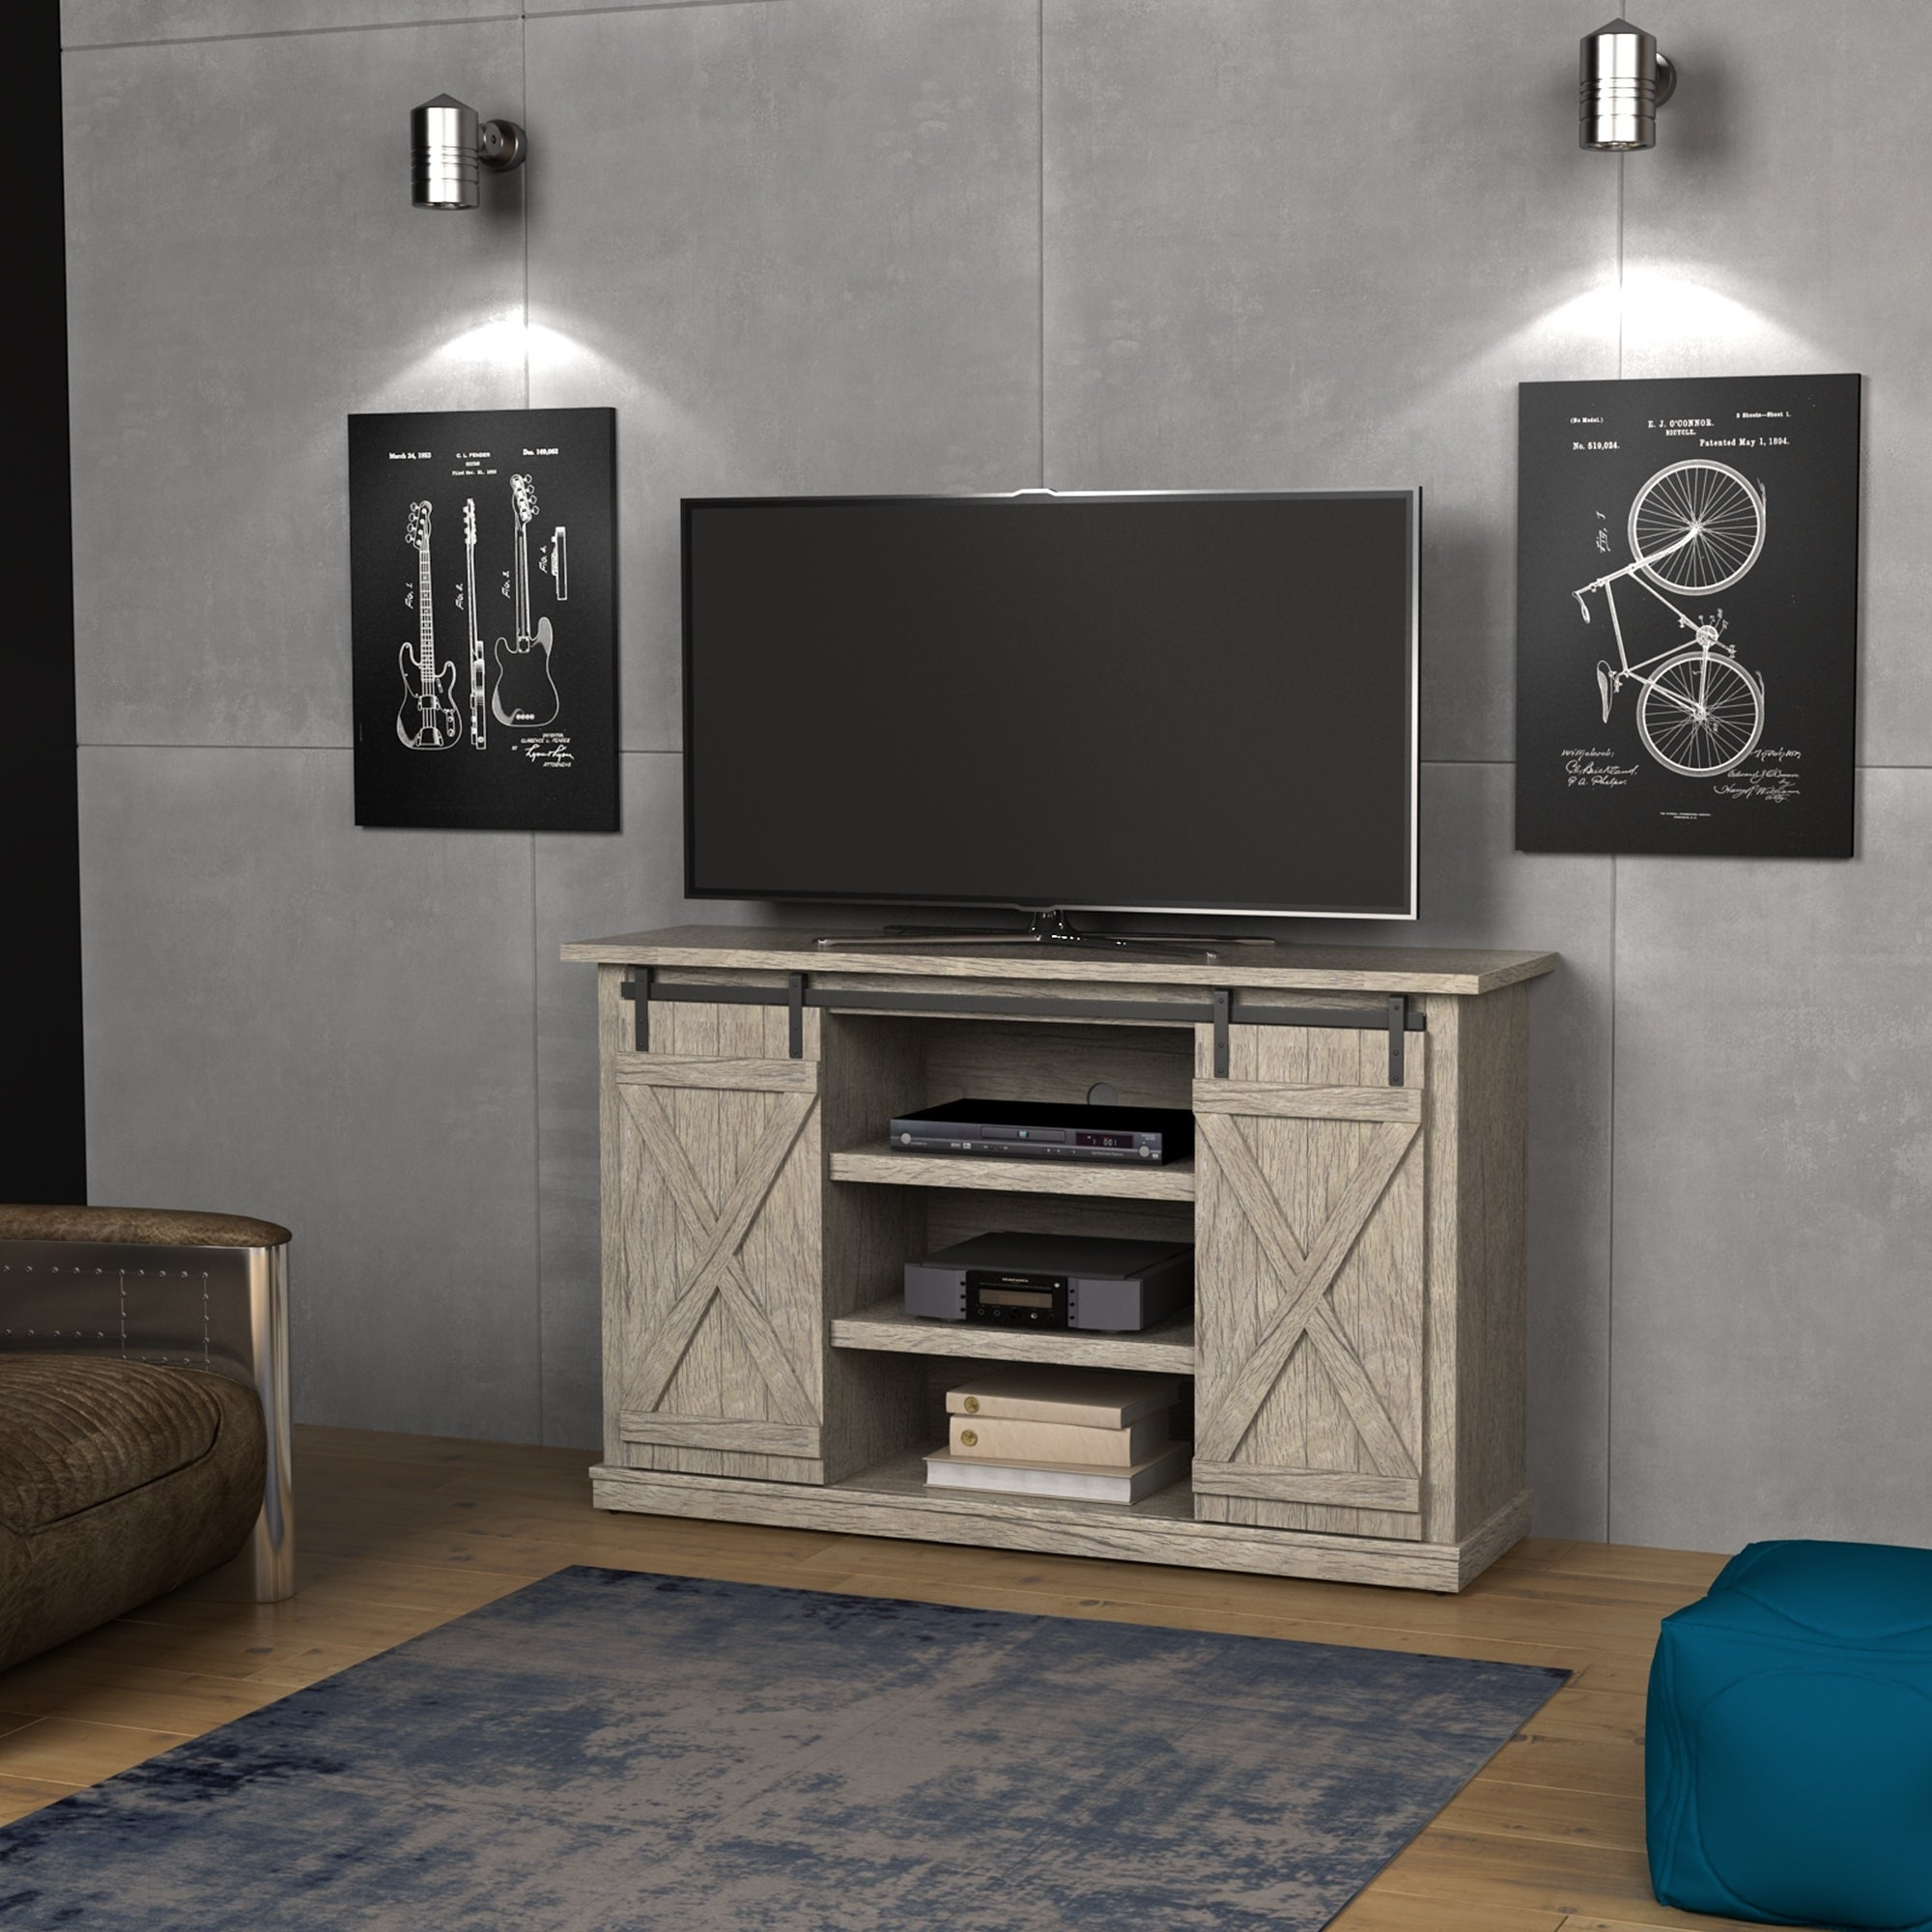 Cottonwood Tv Stand For Tvs Up To 60 Inches Ashland Pine On Sale Overstock 15210307